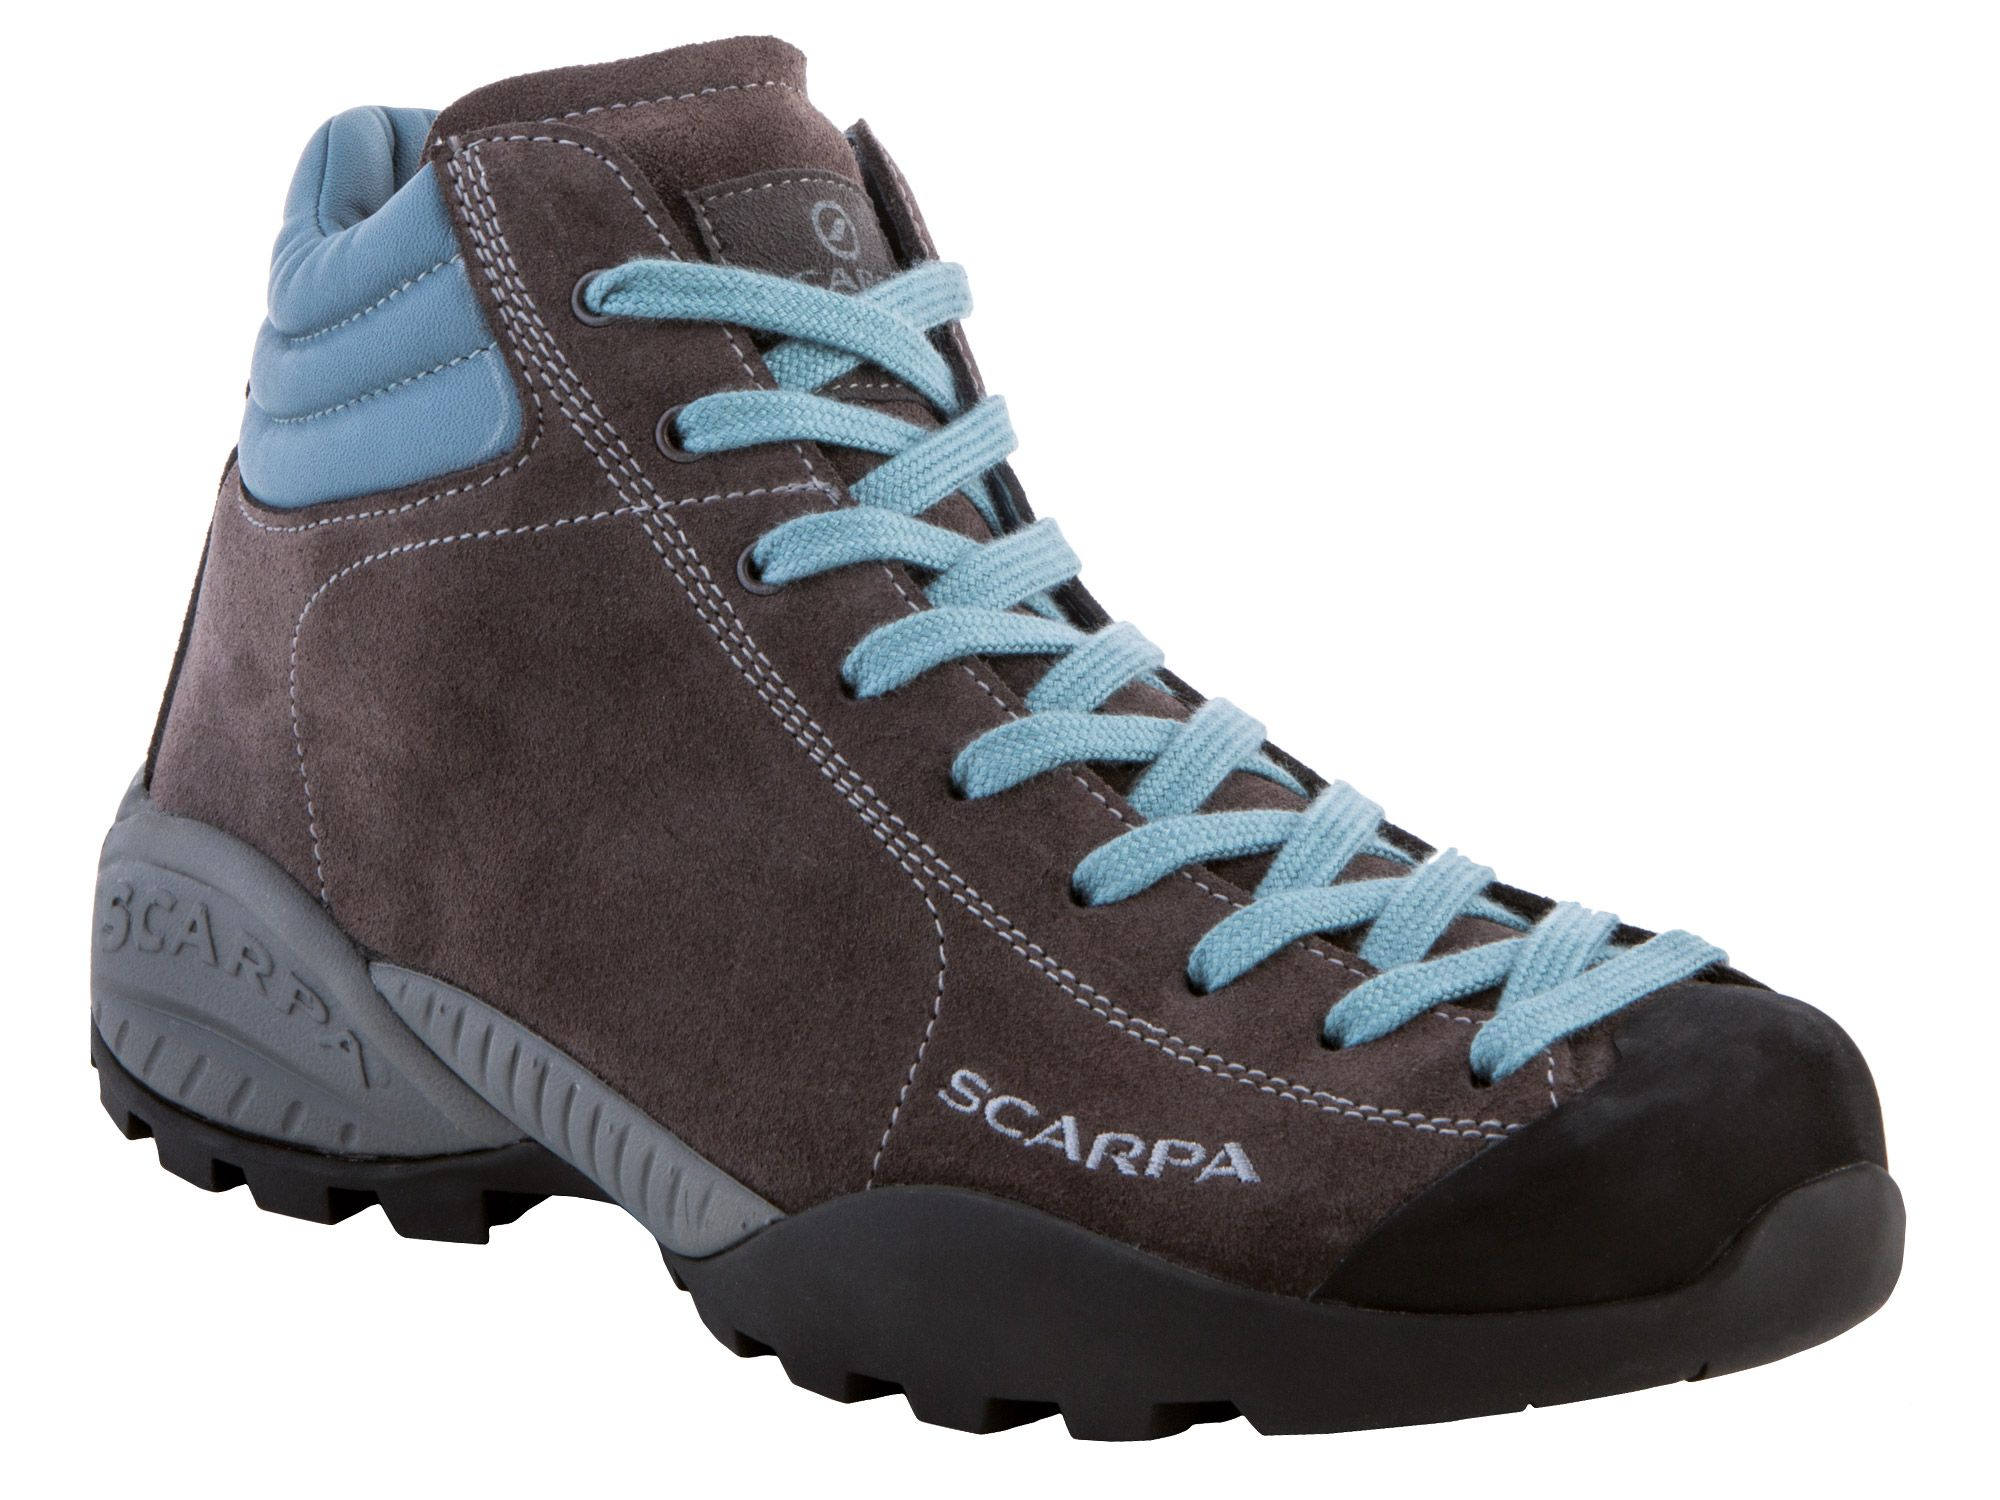 Scarpa Mojito Plus GTX Charcoal/Dark Green-30